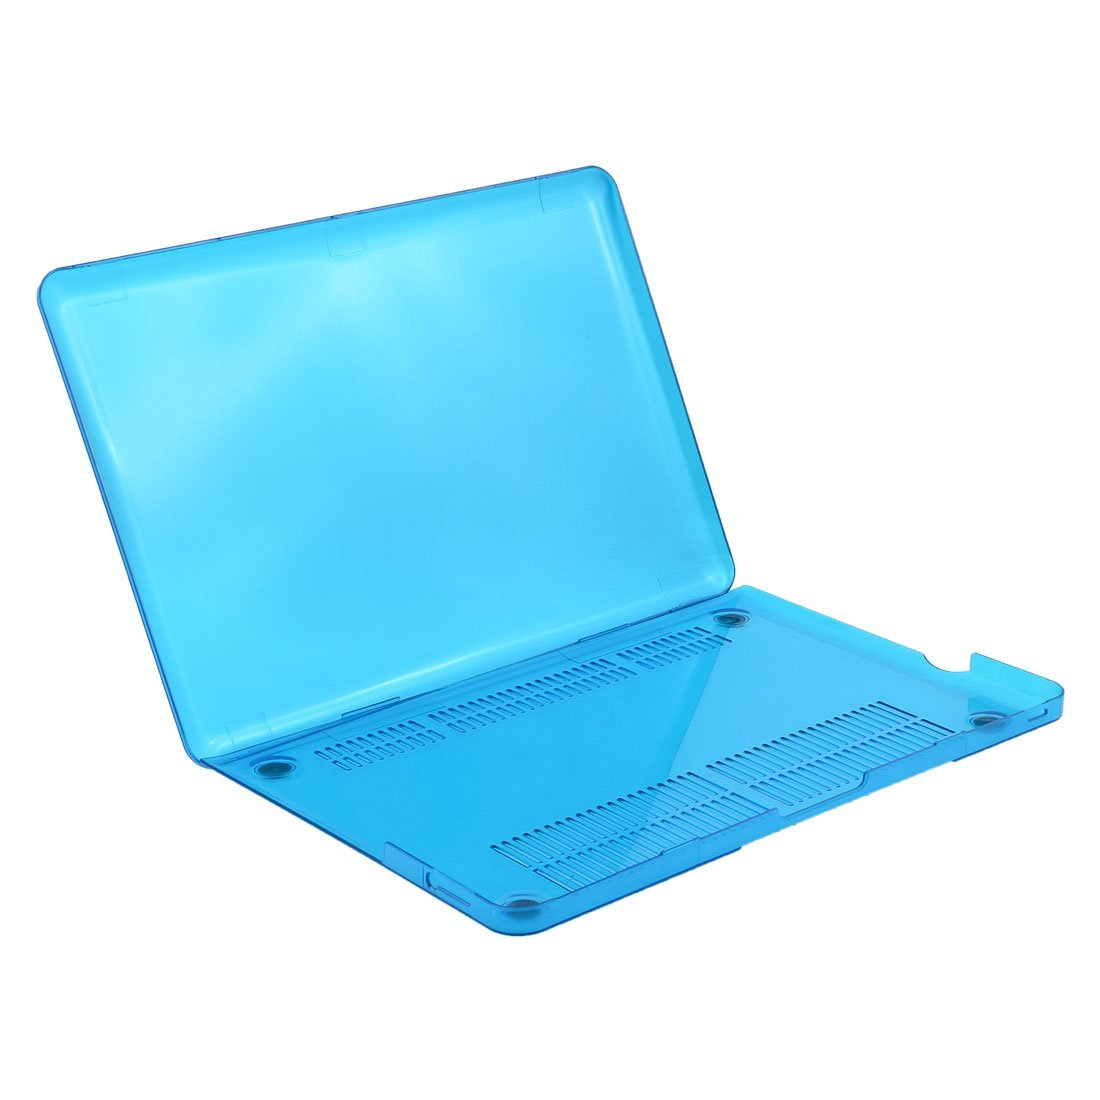 uxcell Plastic Laptop Non-Slip Hard Cover Case Crystal Teal Blue for Macbook Pro 13.3 Inch